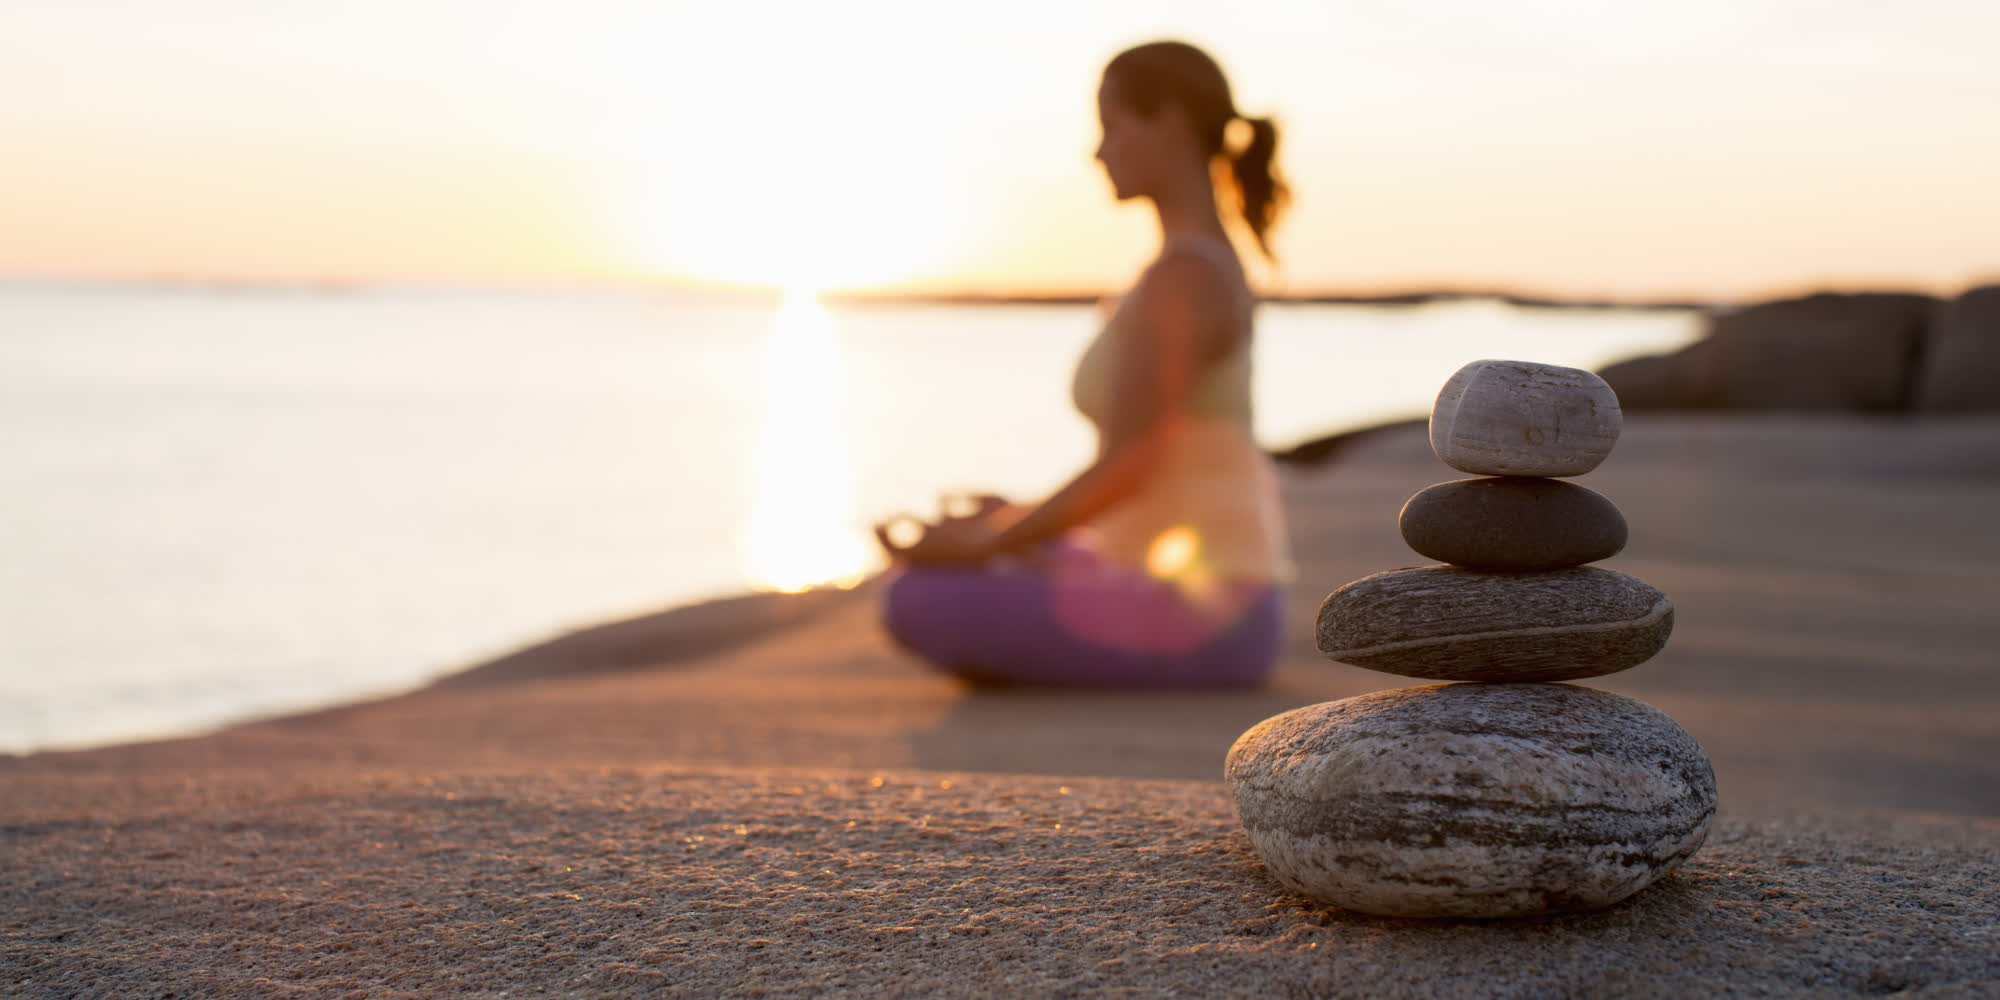 4 ways you can zen this week